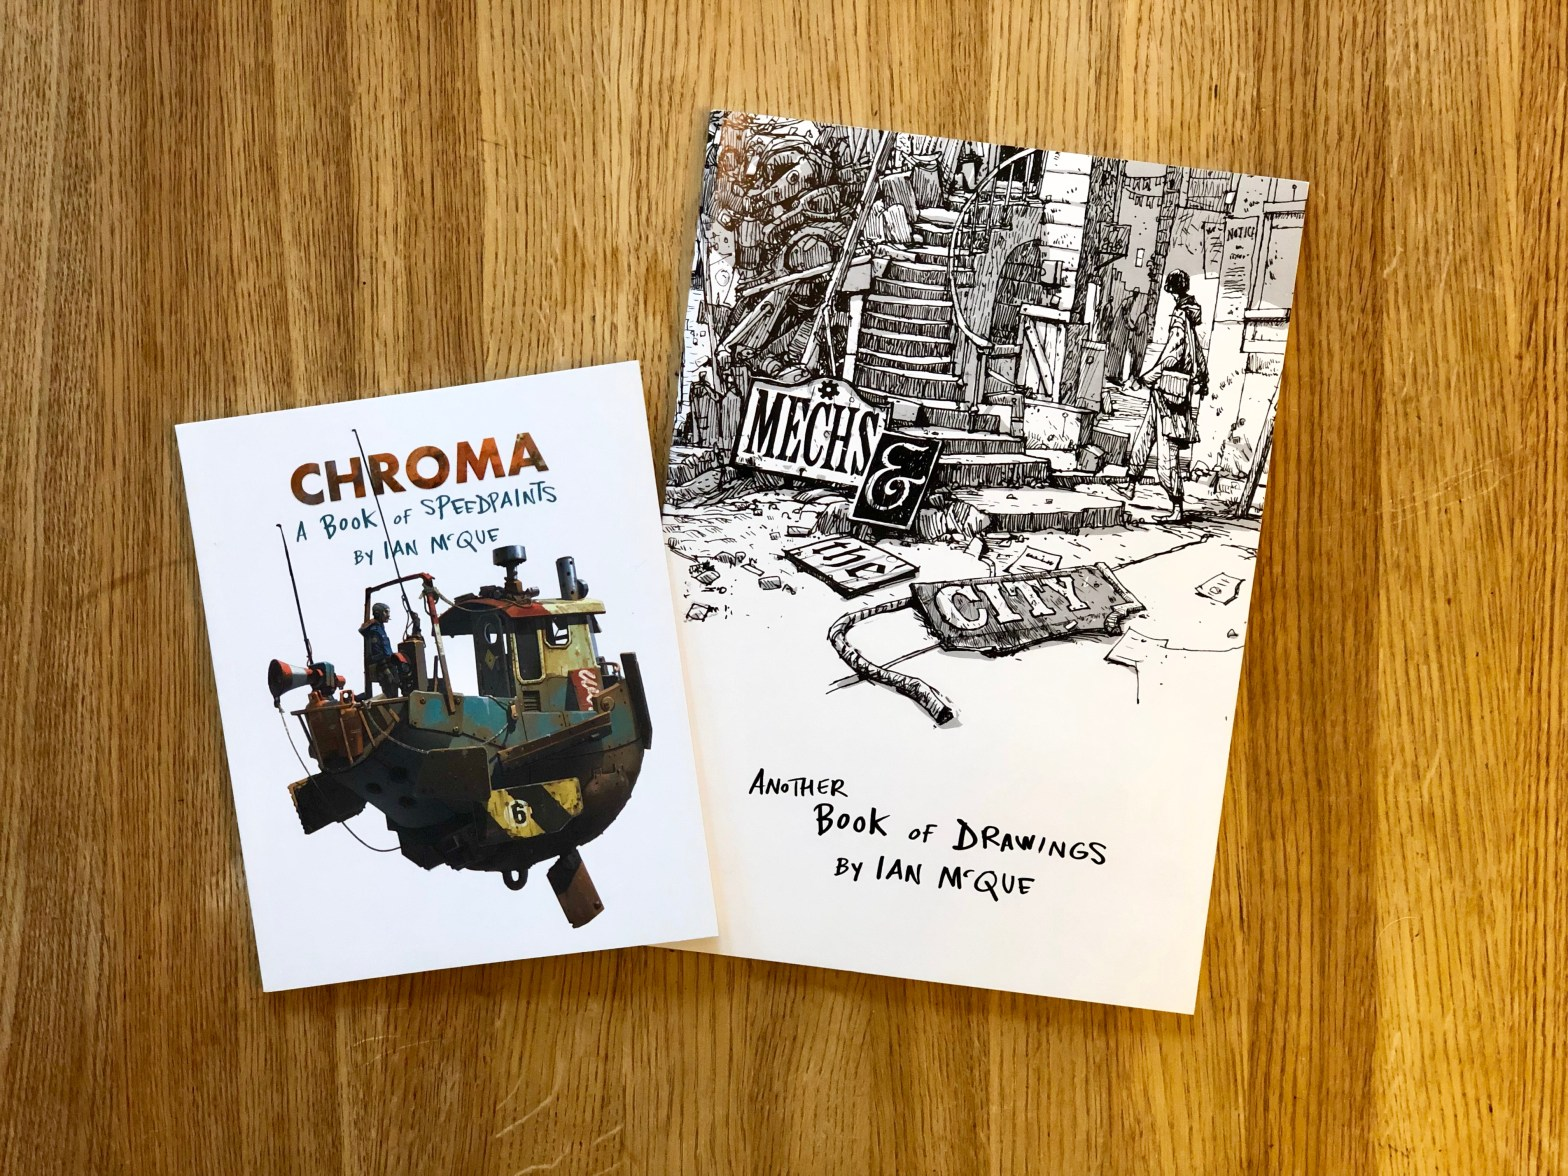 Ian McQues skissböcker Chroma och Another book of drawings.